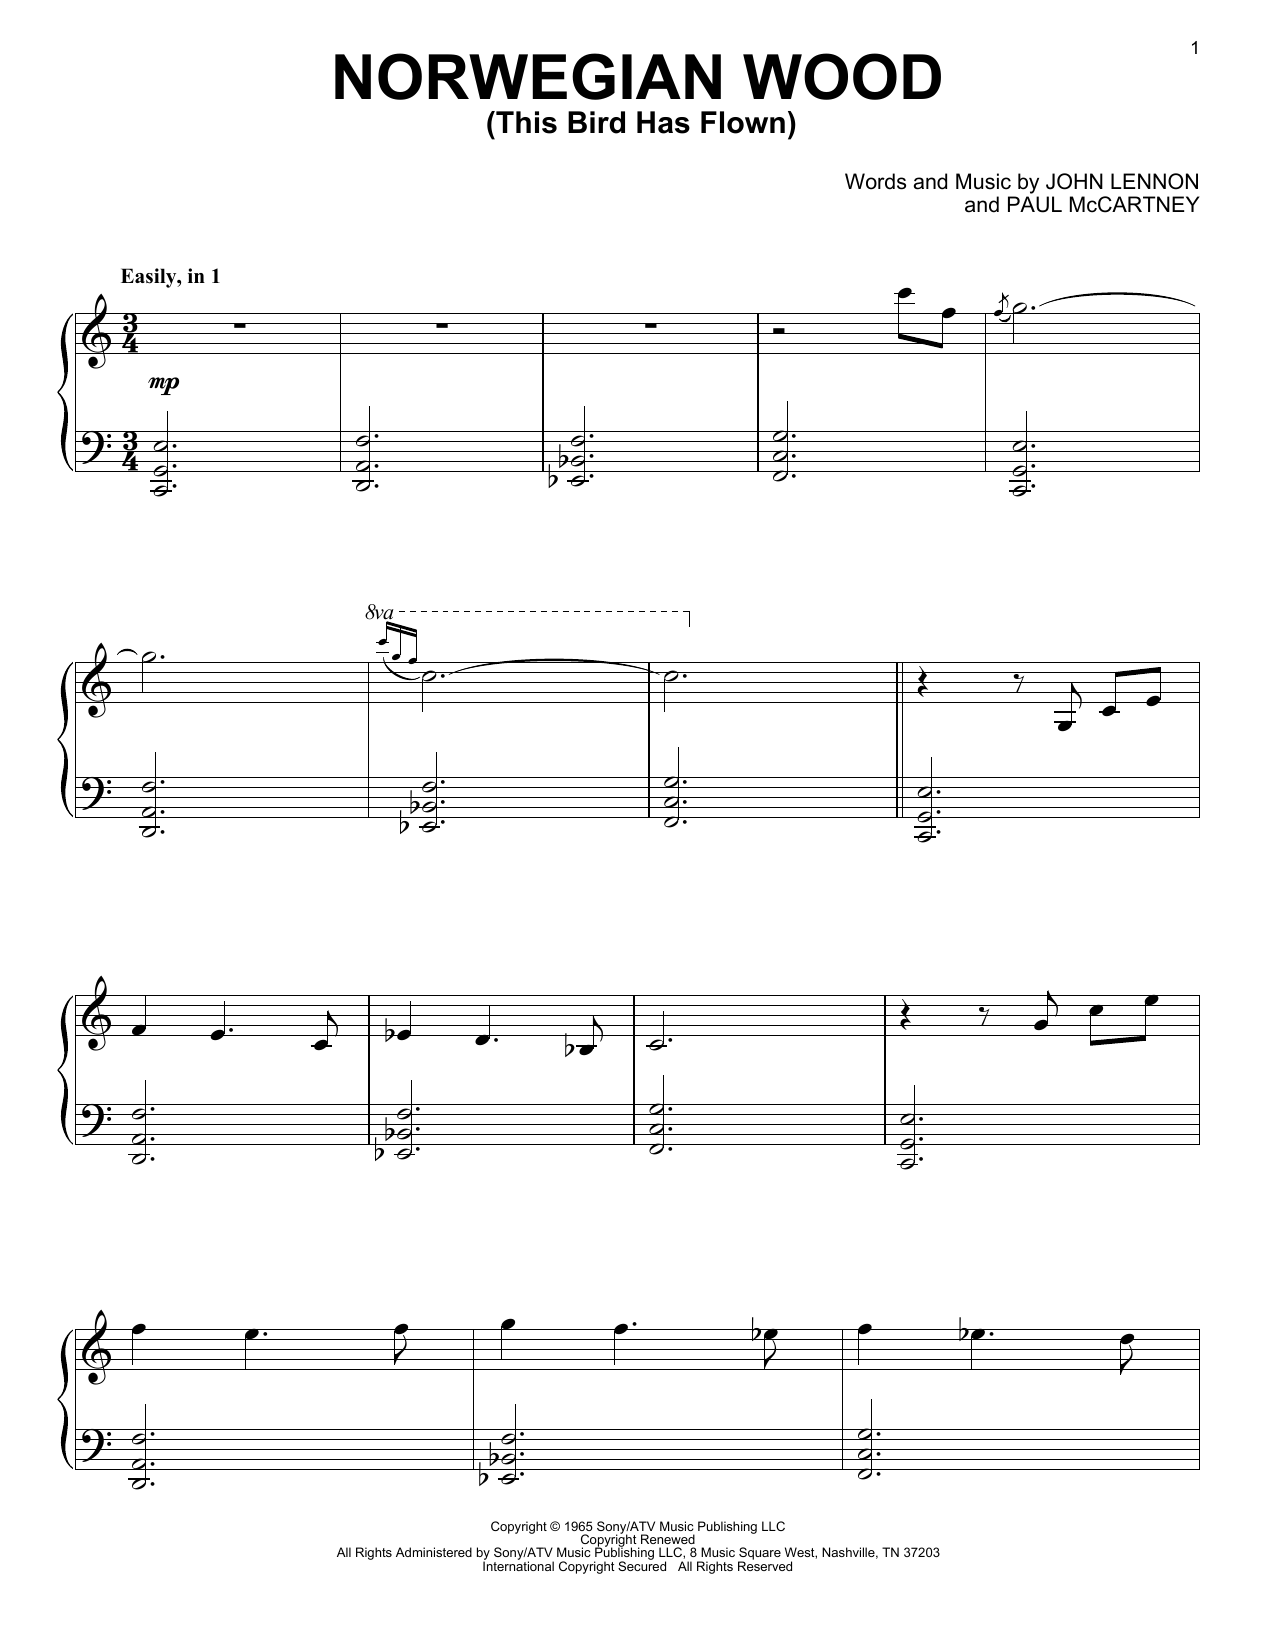 Norwegian Wood (This Bird Has Flown) Sheet Music